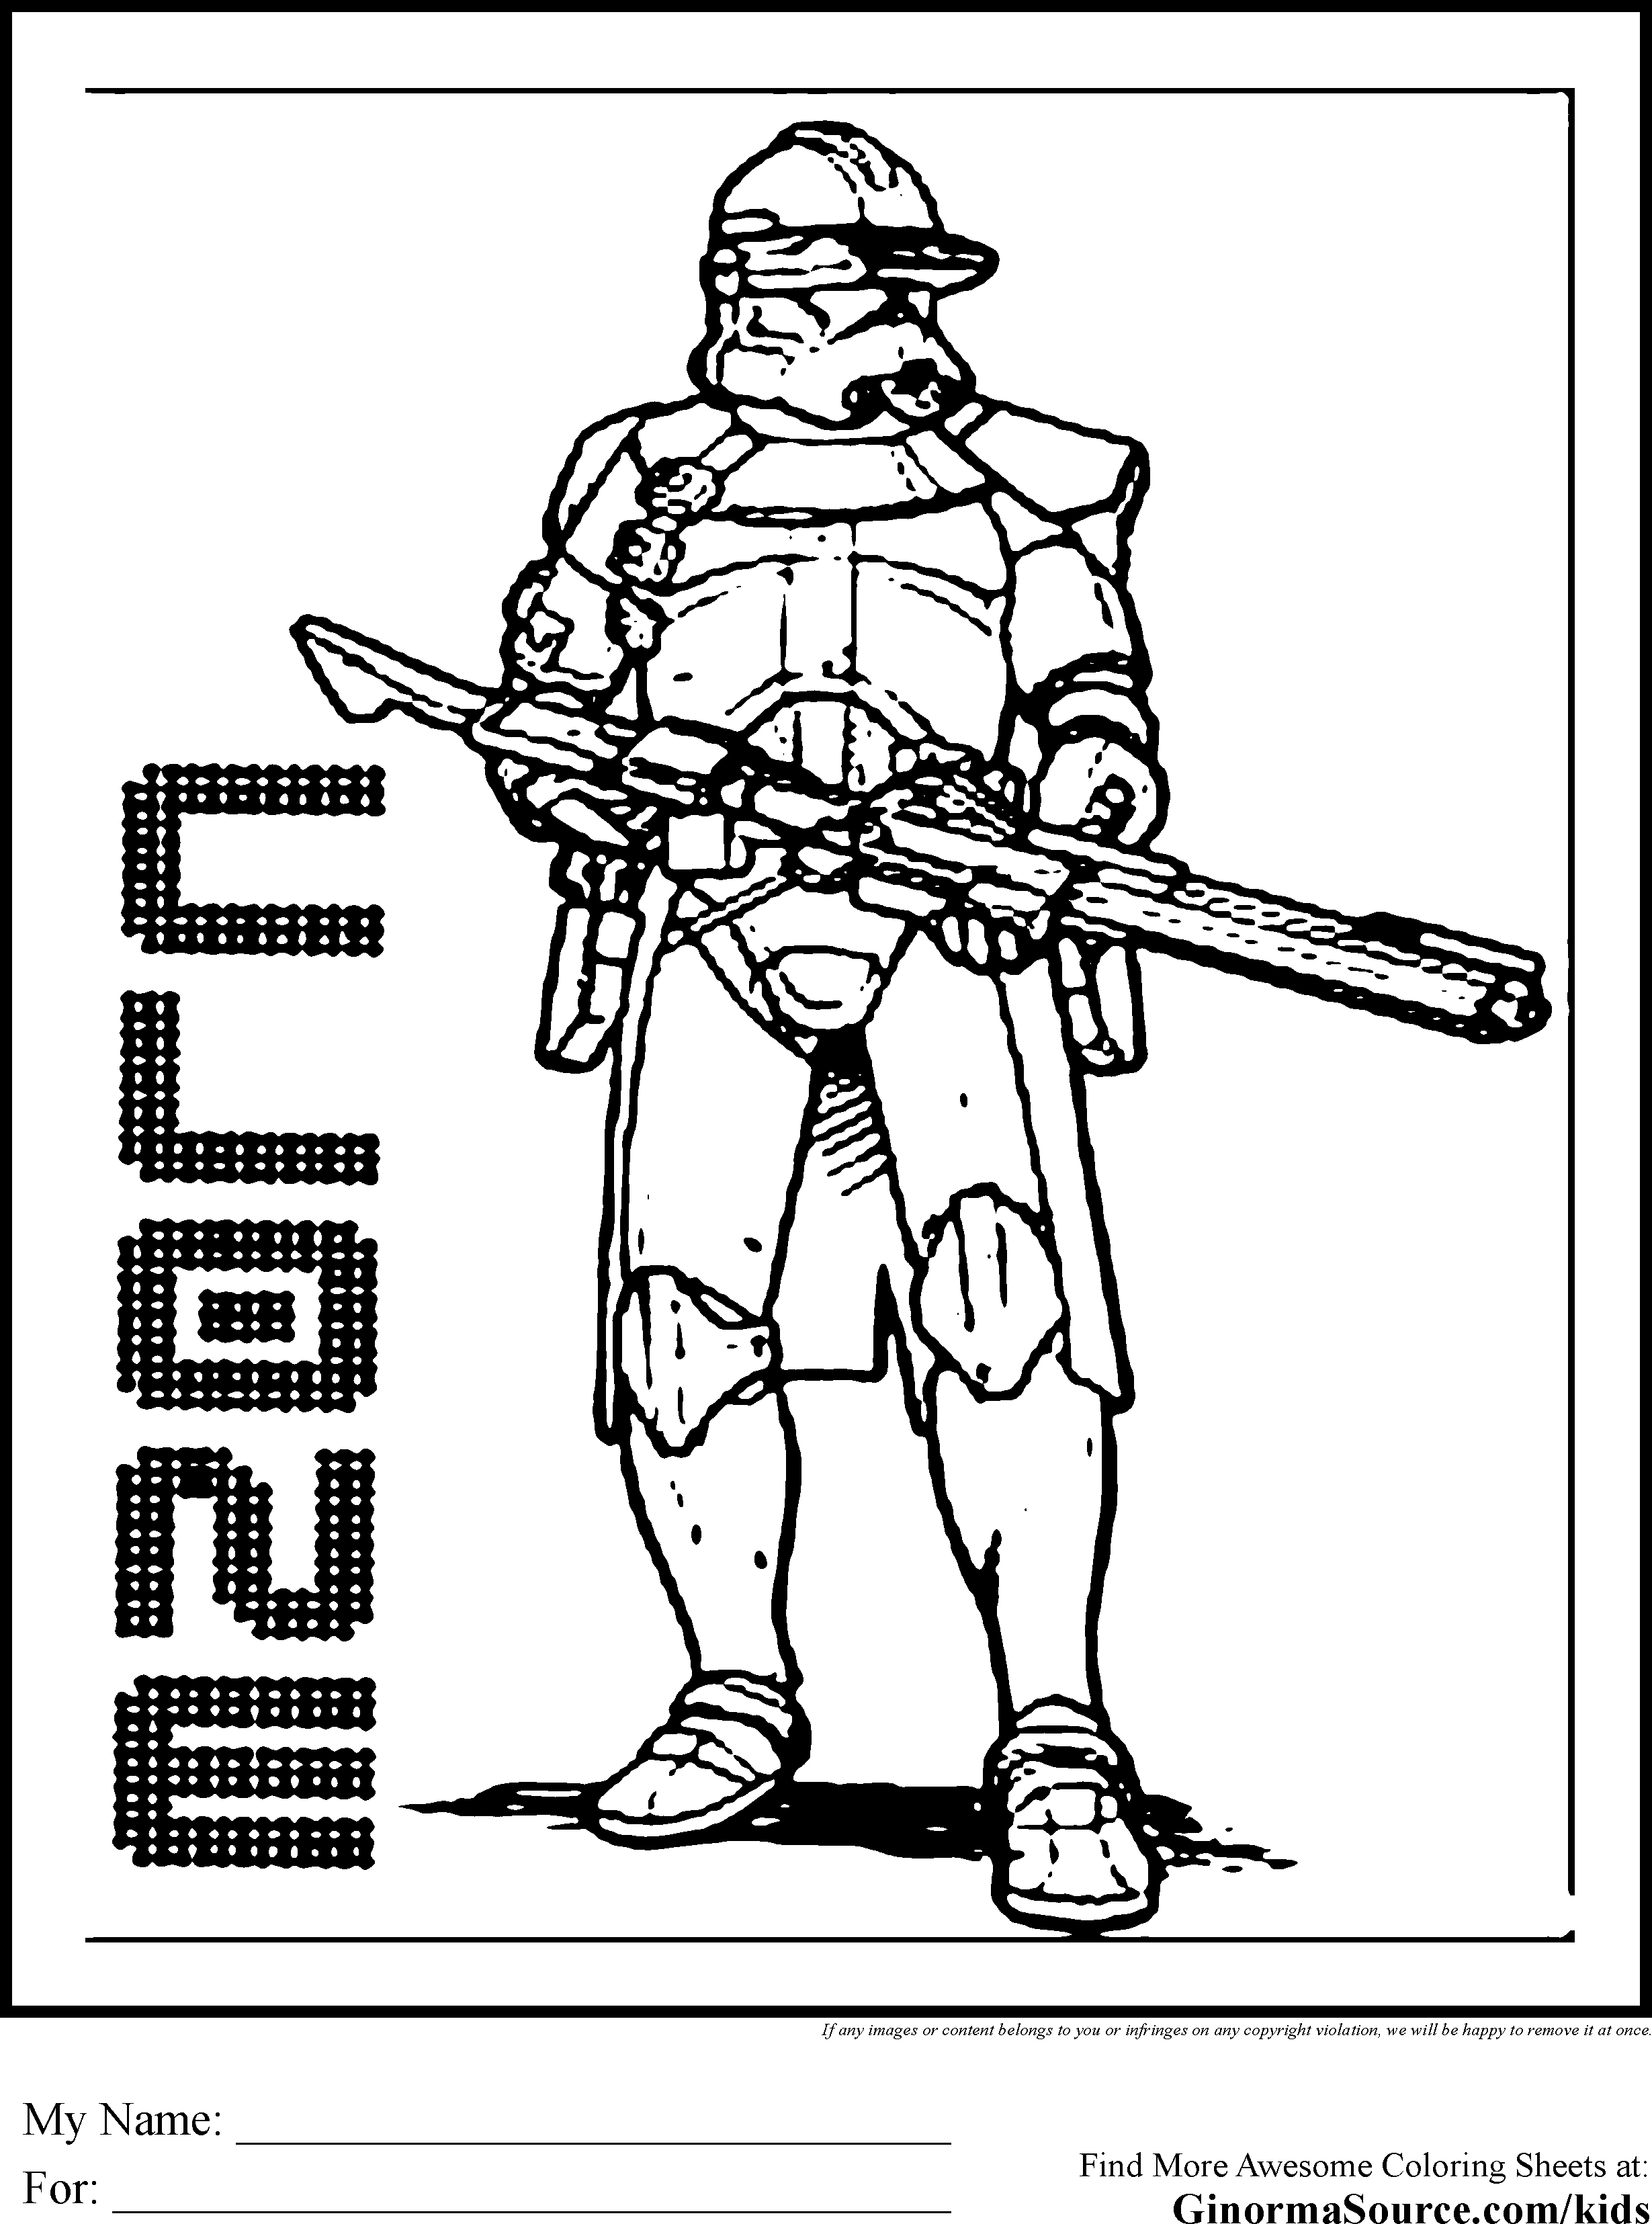 Star Wars Clone Wars Coloring Pages | Coloring Pages For Free - Free Printable Star Wars Coloring Pages